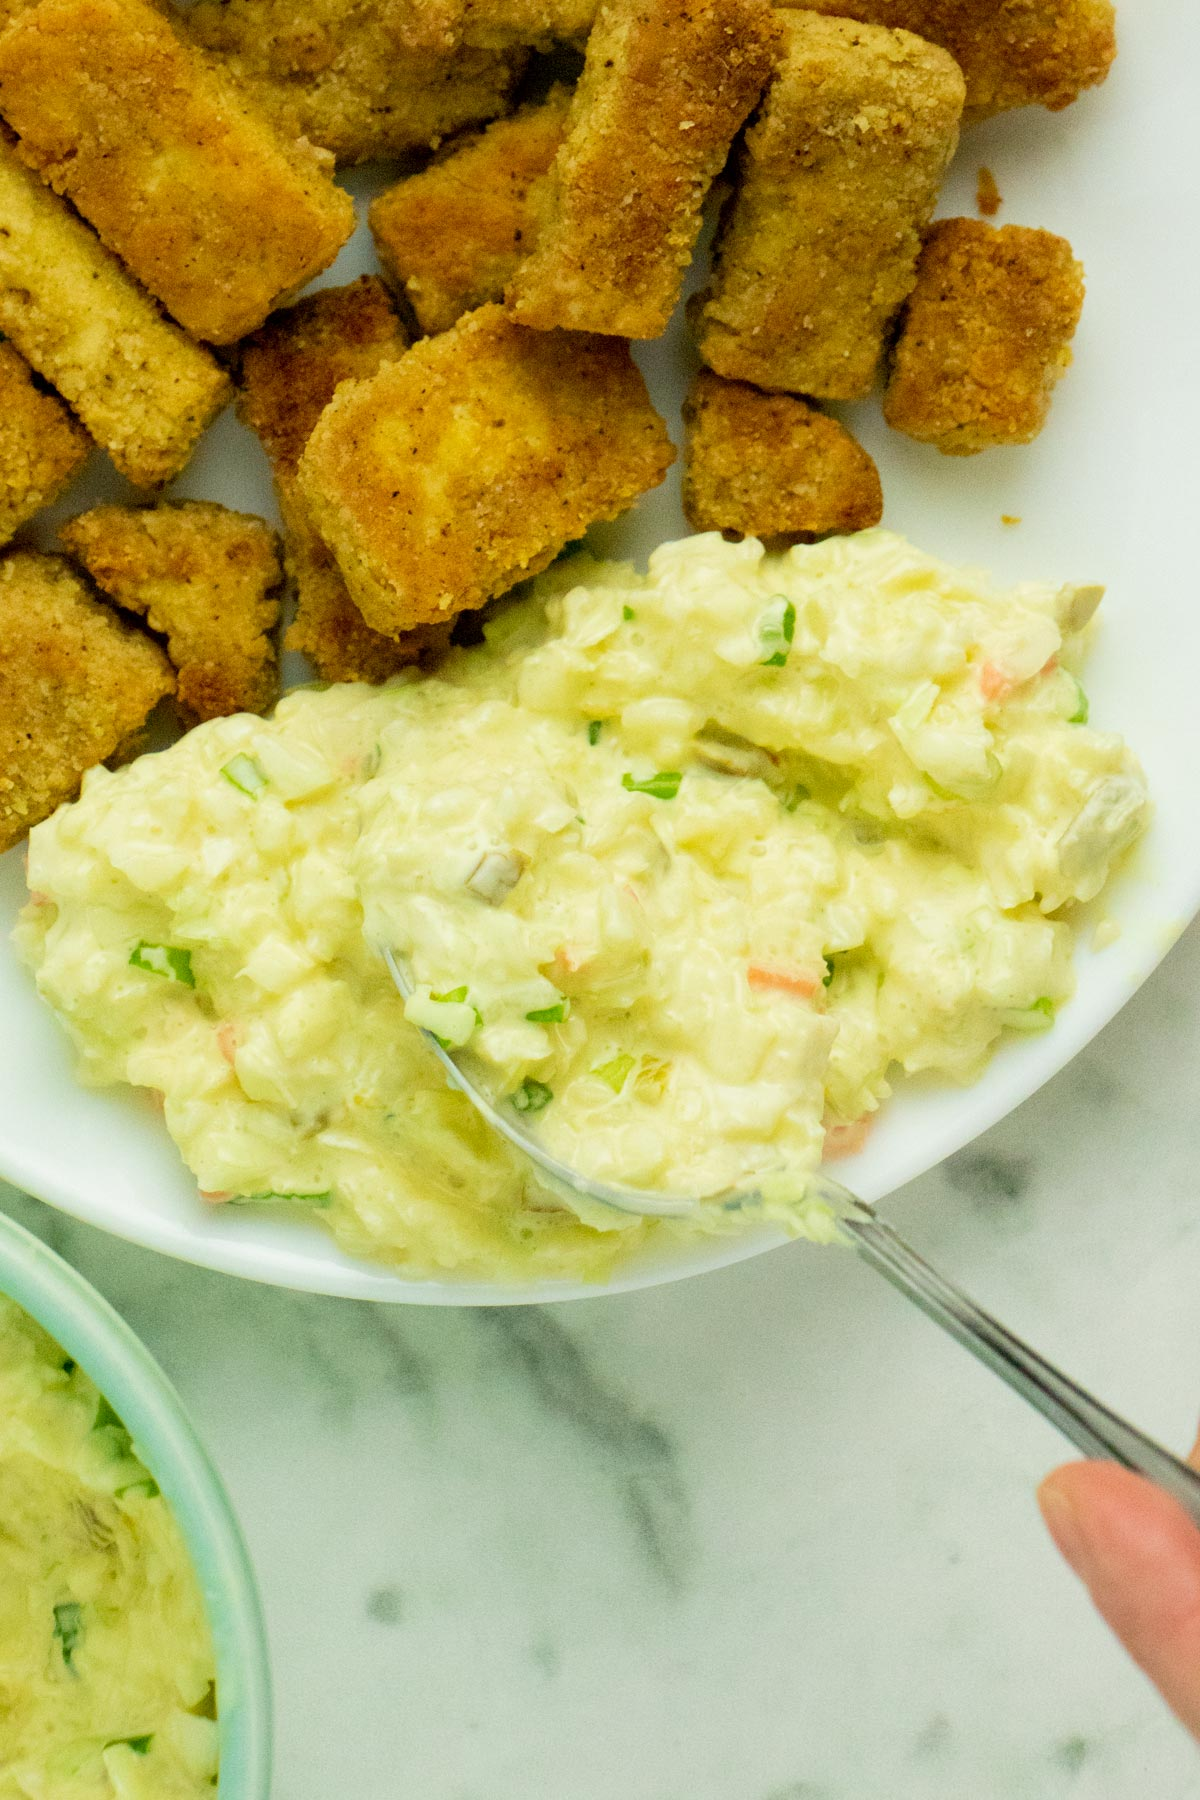 spooning vegan jalapeno slaw onto a plate with chicken fried tofu